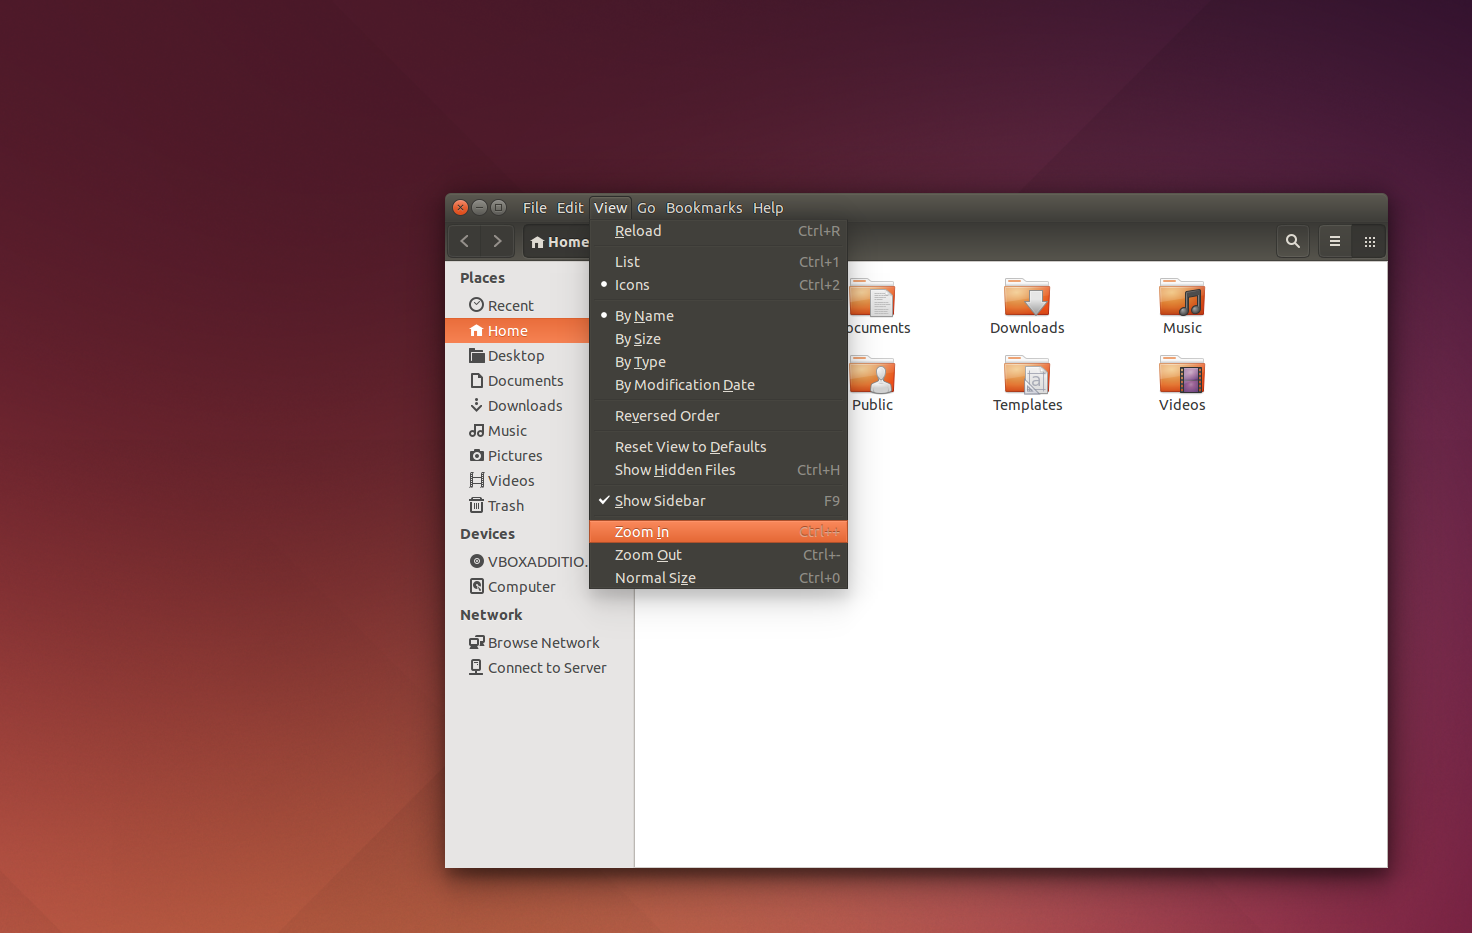 Locally Integrated Menus in Ubuntu 14.04 Trusty Tahr